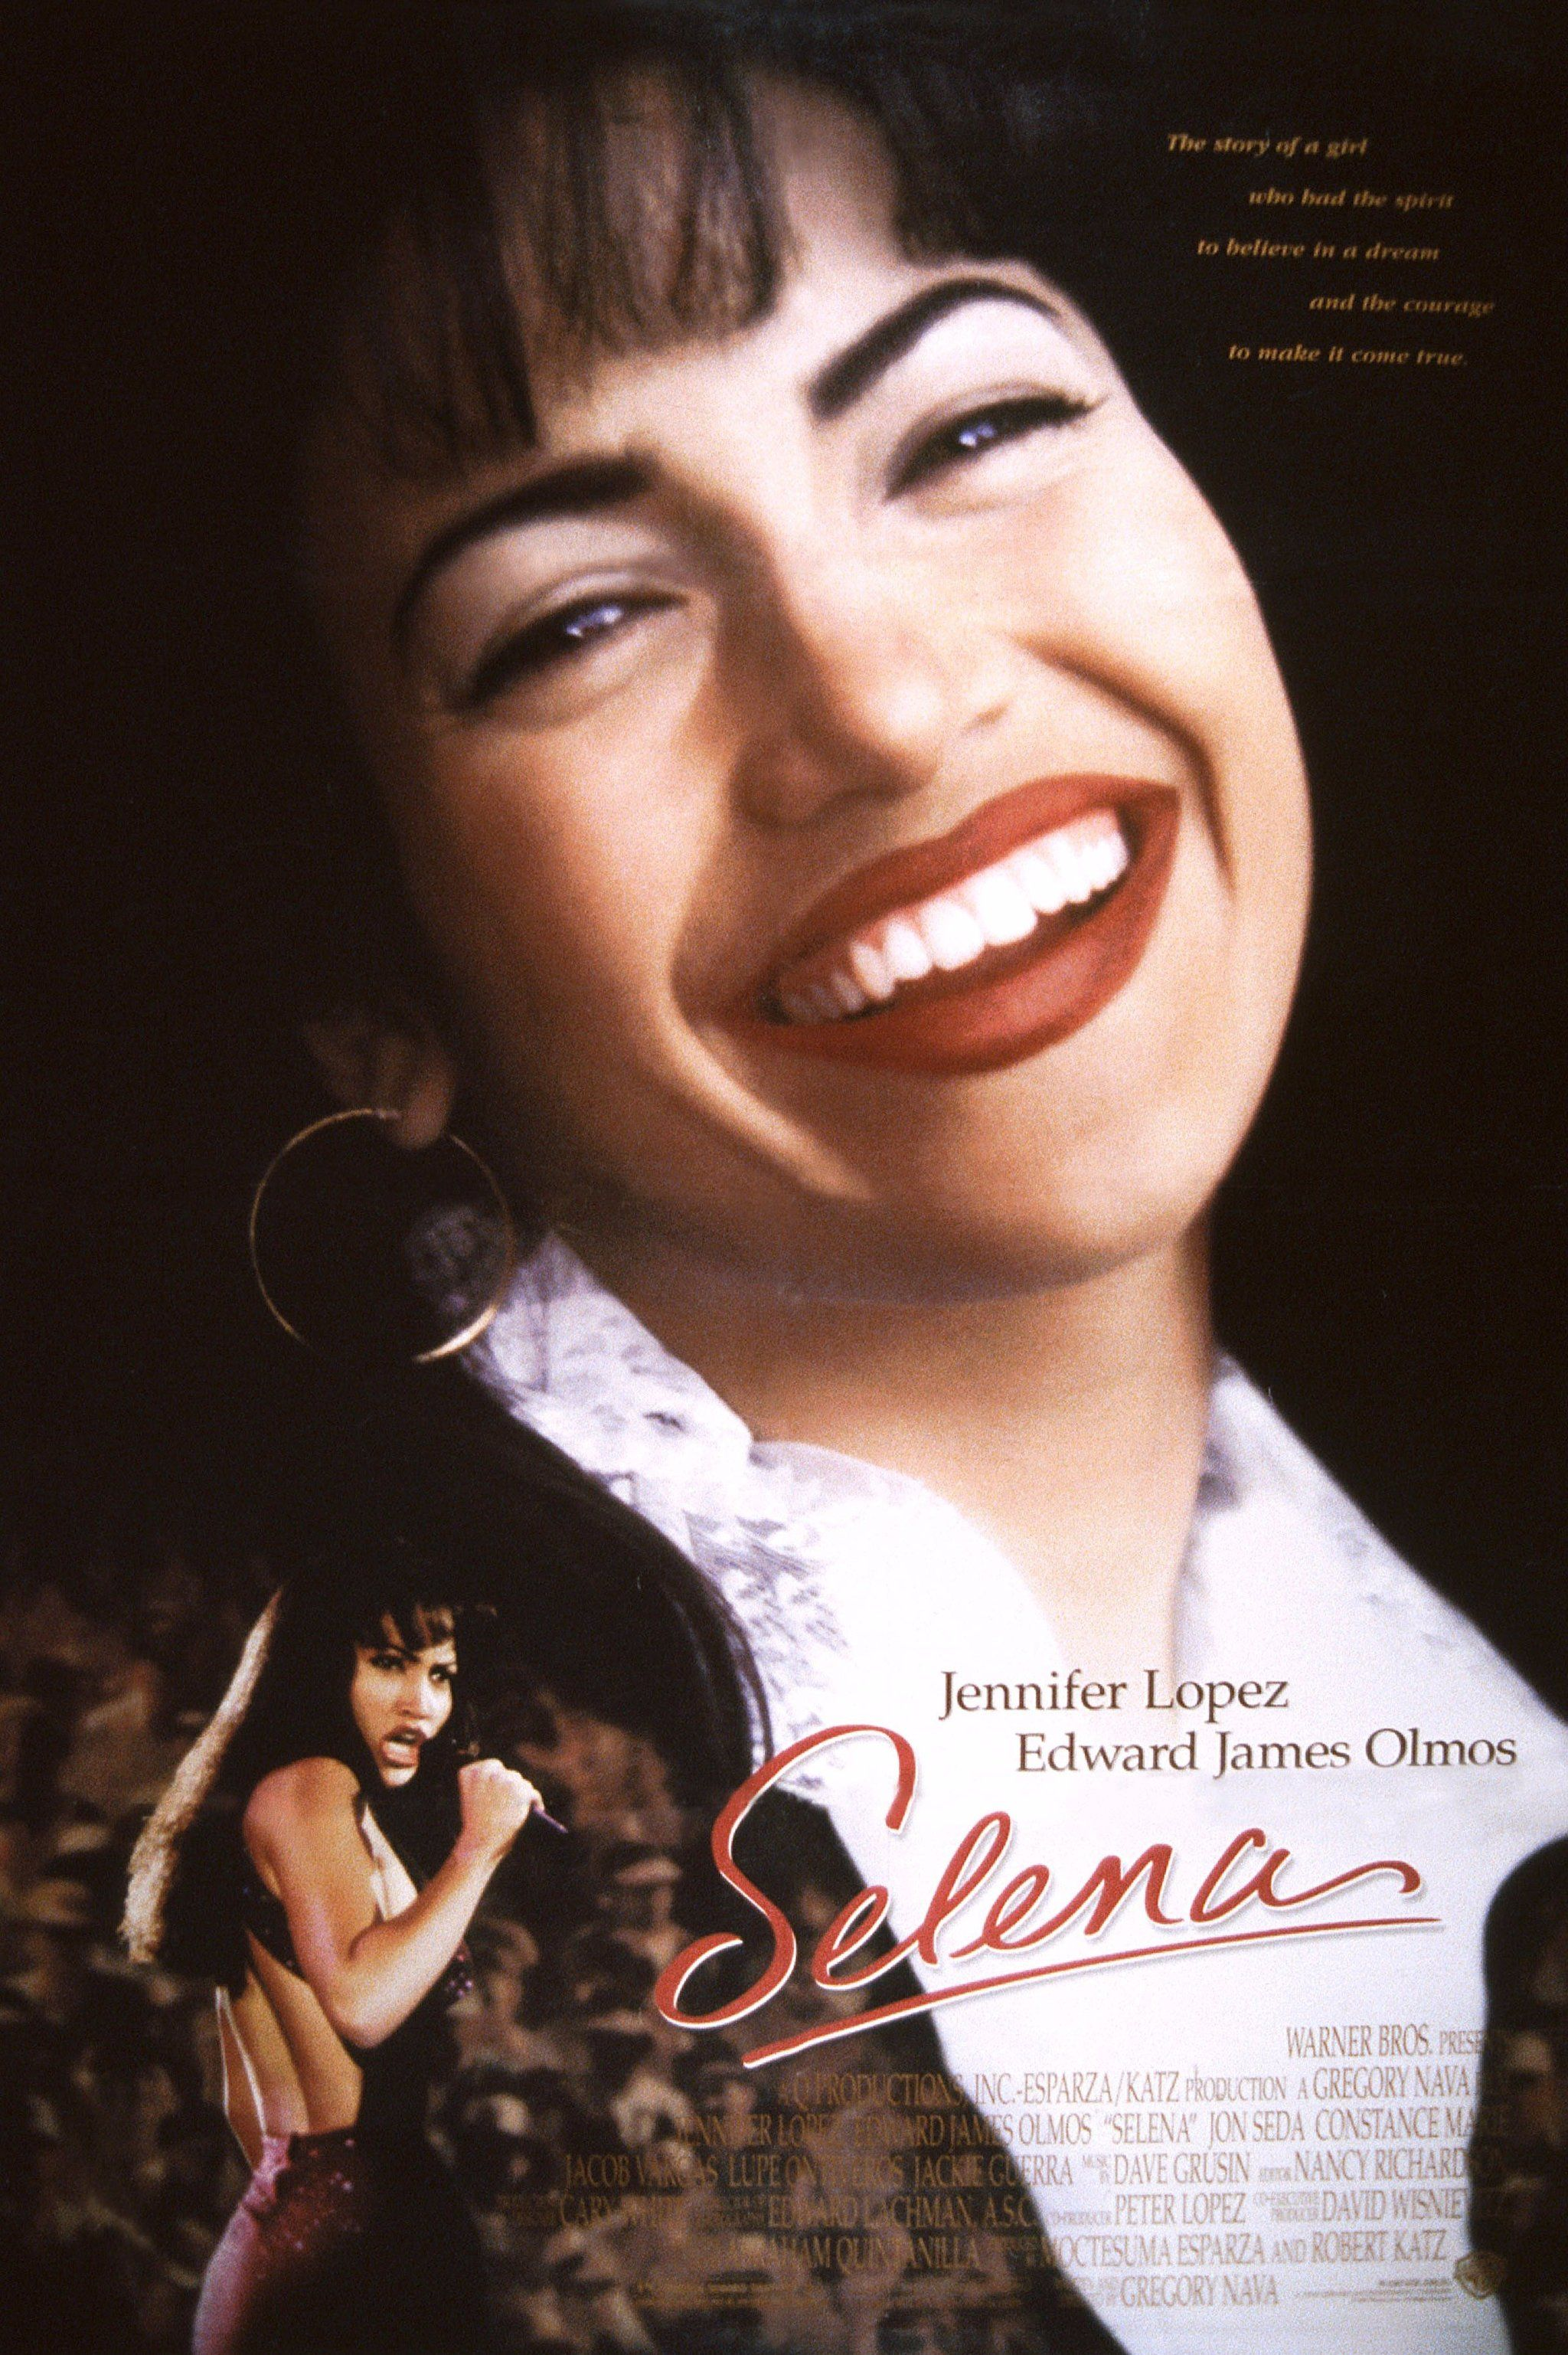 15 Things You Might Not Know About the Selena Movie